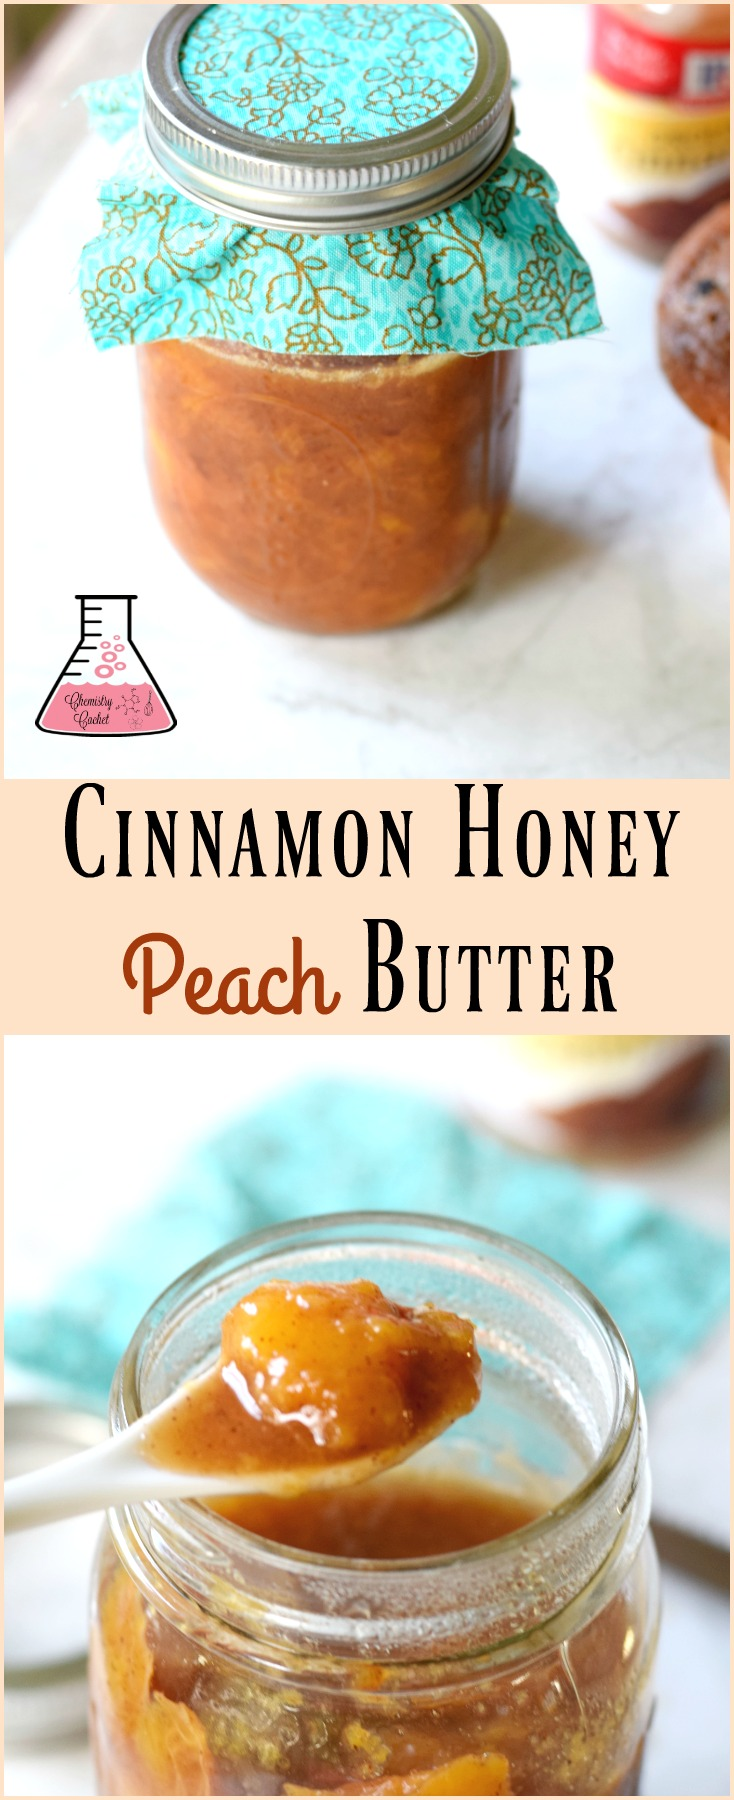 Cinnamon Honey Peach Butter Recipe. Use up all those peaches with this delicious peach butter recipe on chemistrycachet.com